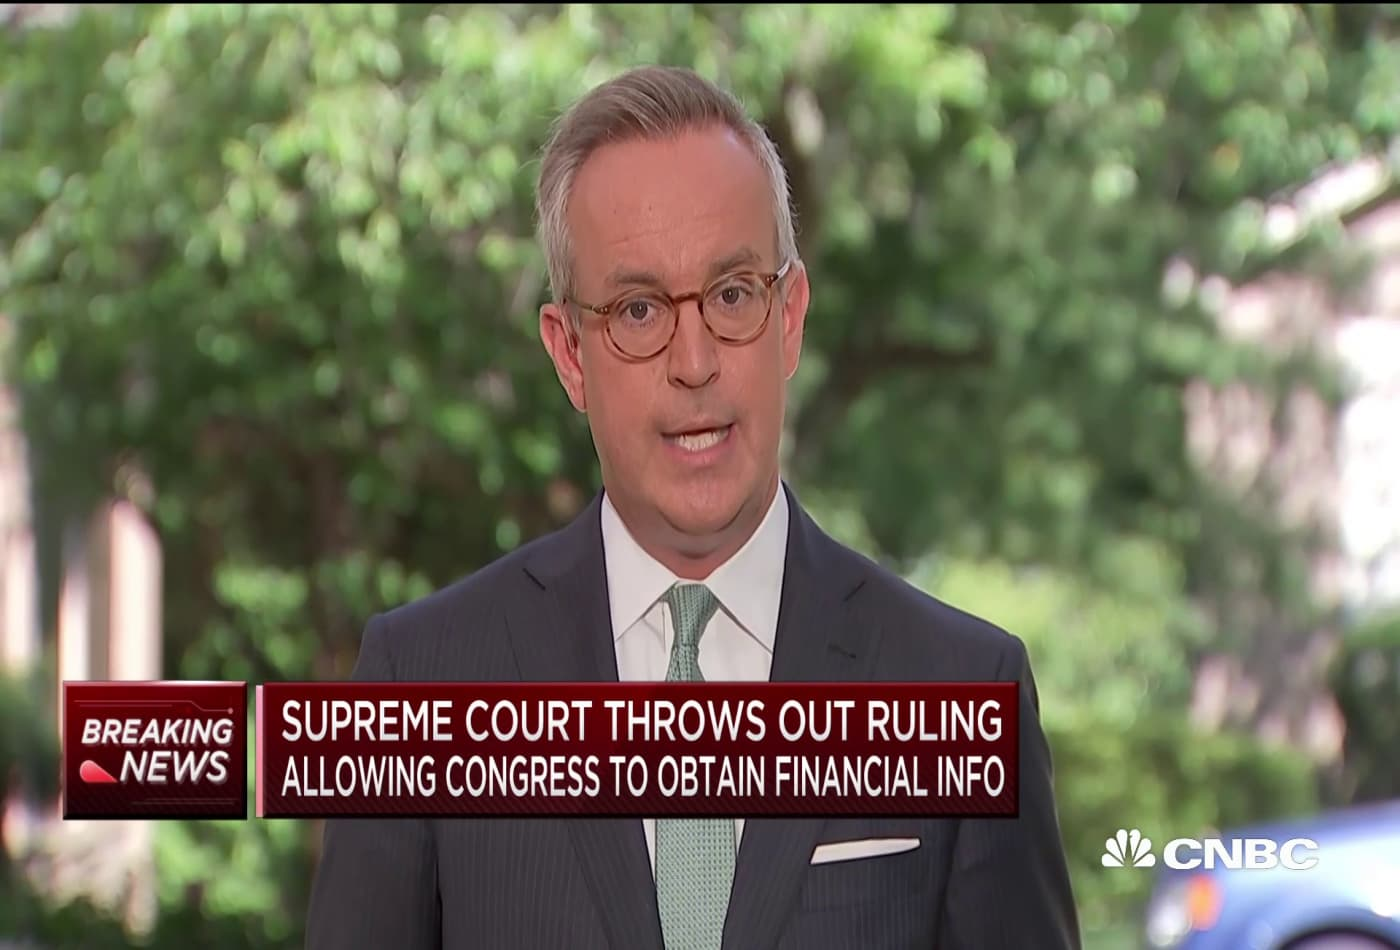 Supreme Court throws out ruling allowing Congress to obtain Trump's financial info